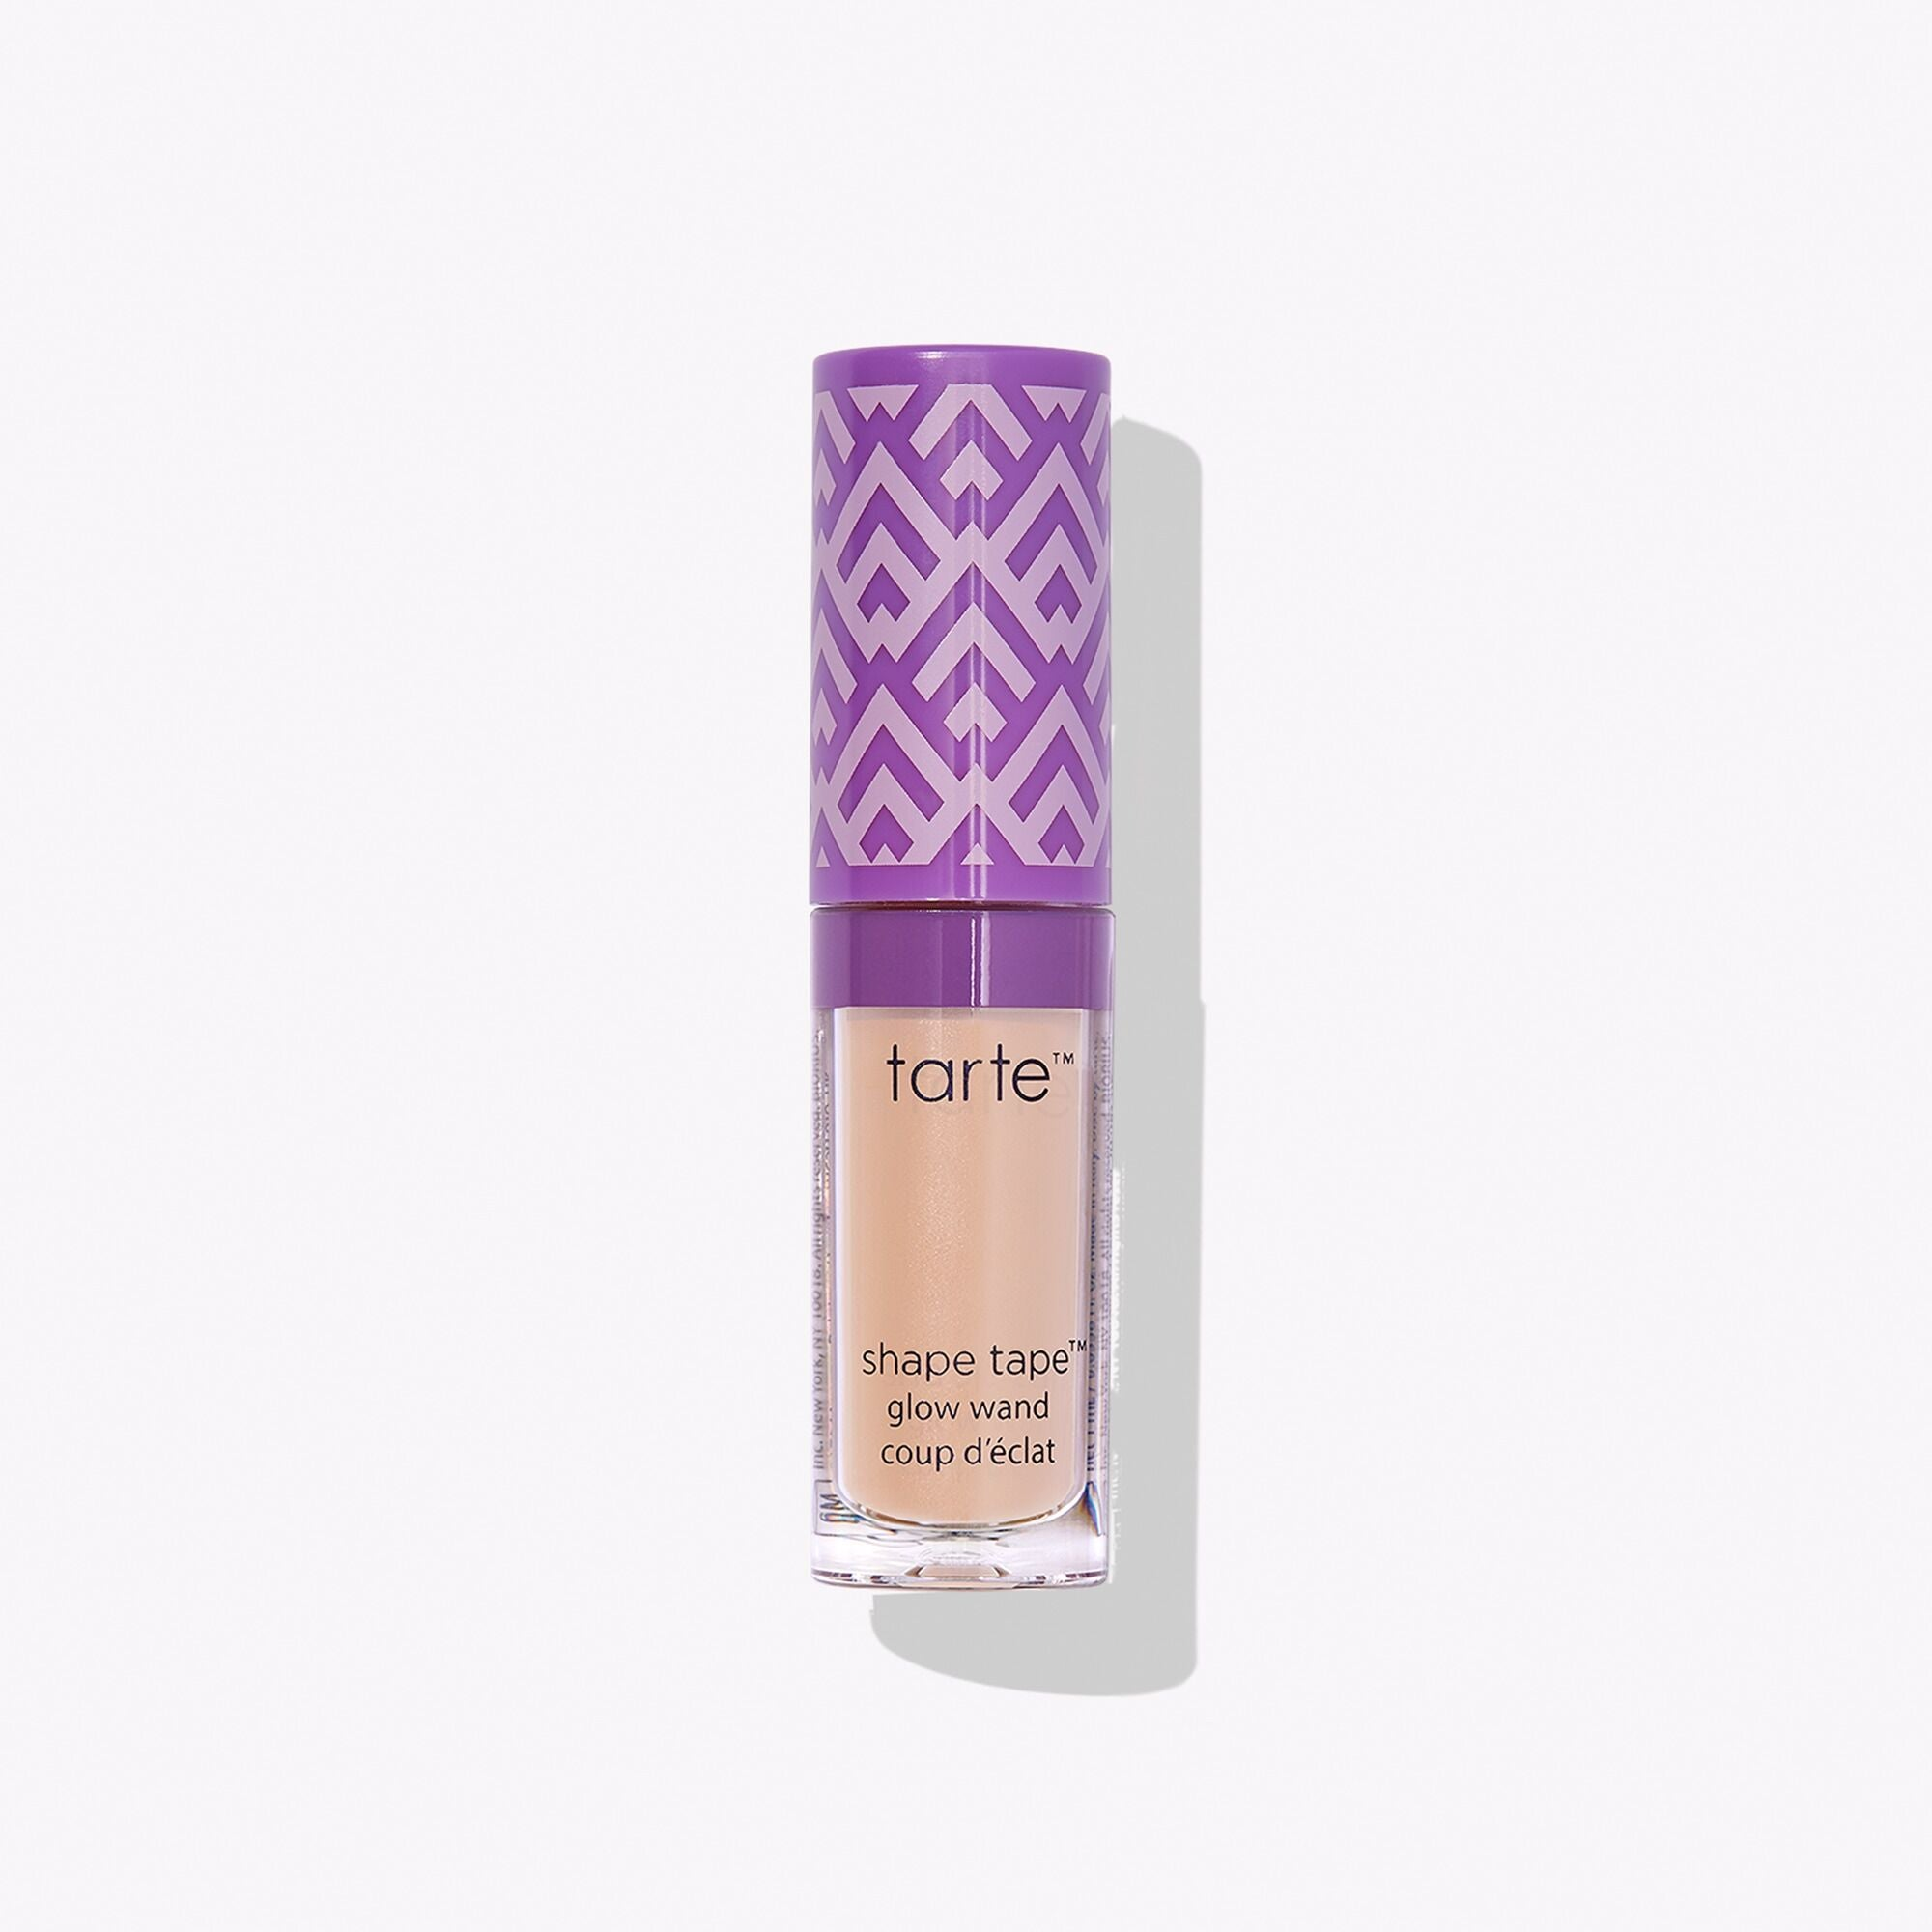 Tarte - Travel Size Shape Tape™ Glow Wand